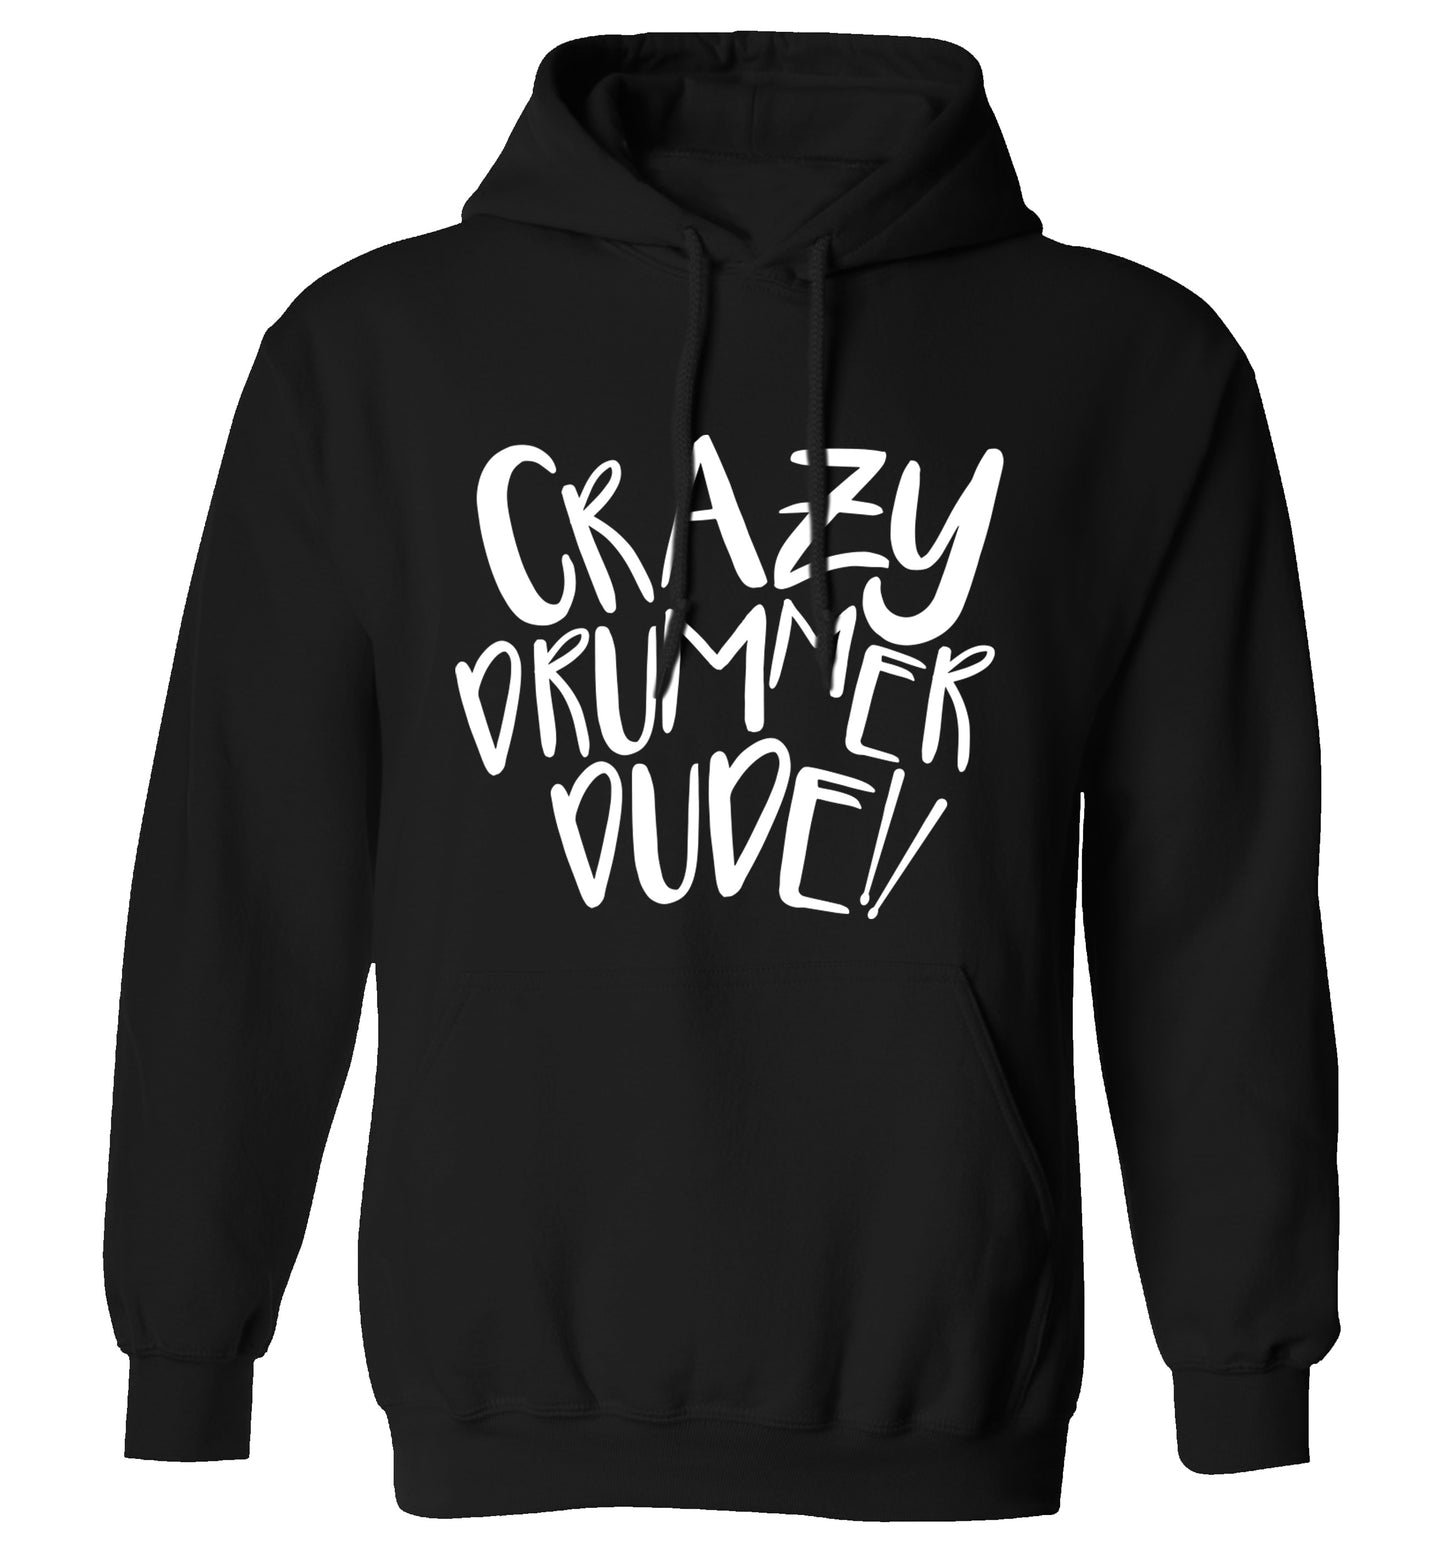 Crazy drummer dude adults unisex black hoodie 2XL